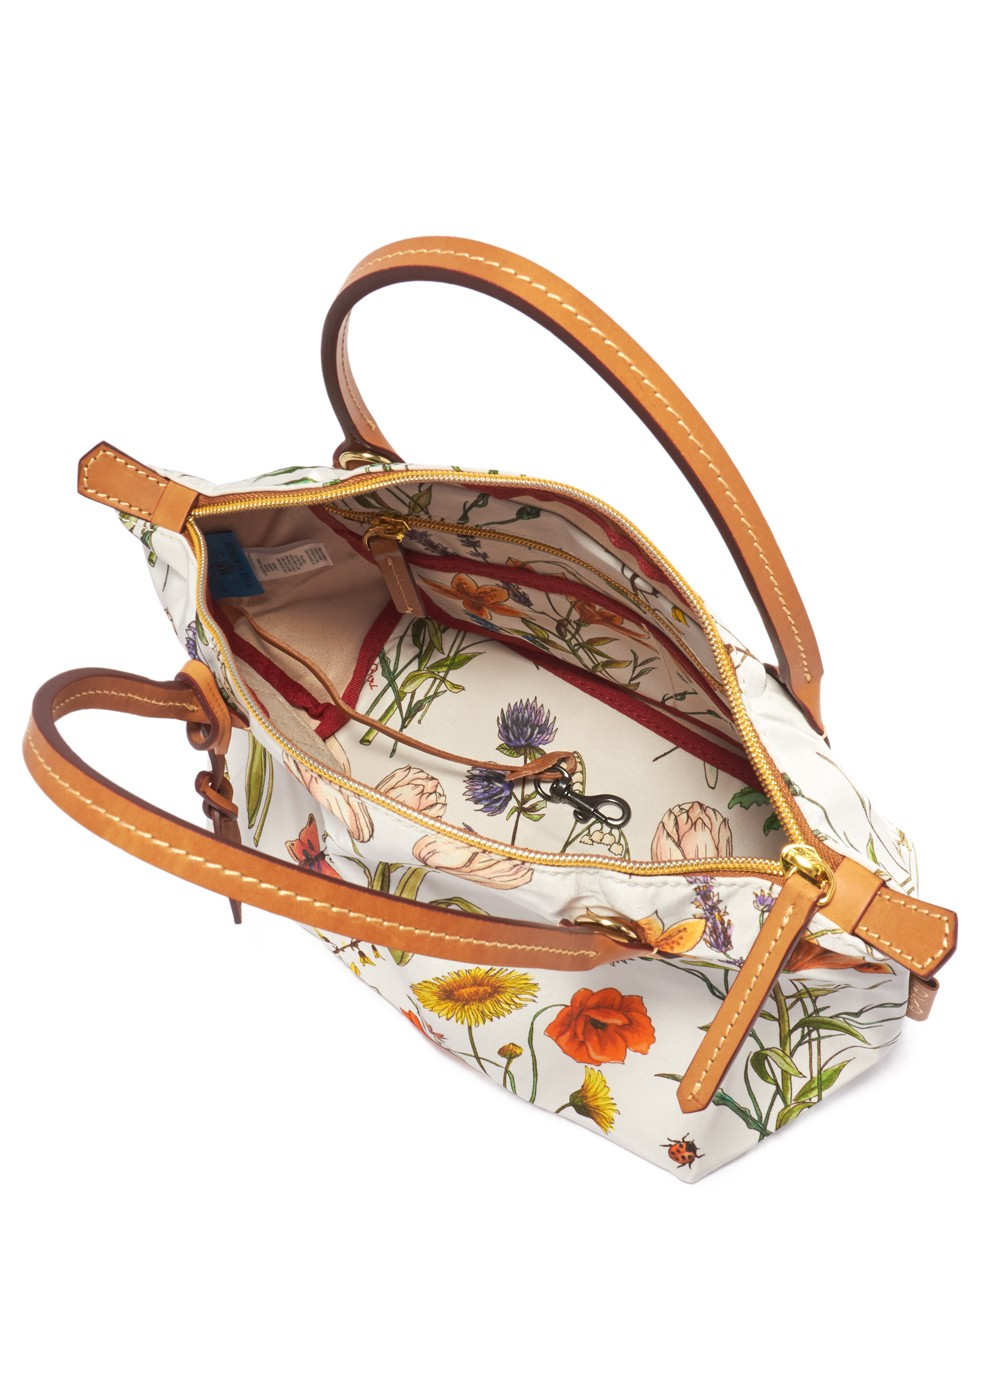 【最大38%OFF】【9/2入荷】【'19年秋冬新作】FLOWER NATURE MINI DUFFLE|WHITE|ハンドバッグ|ROBERTA PIERI